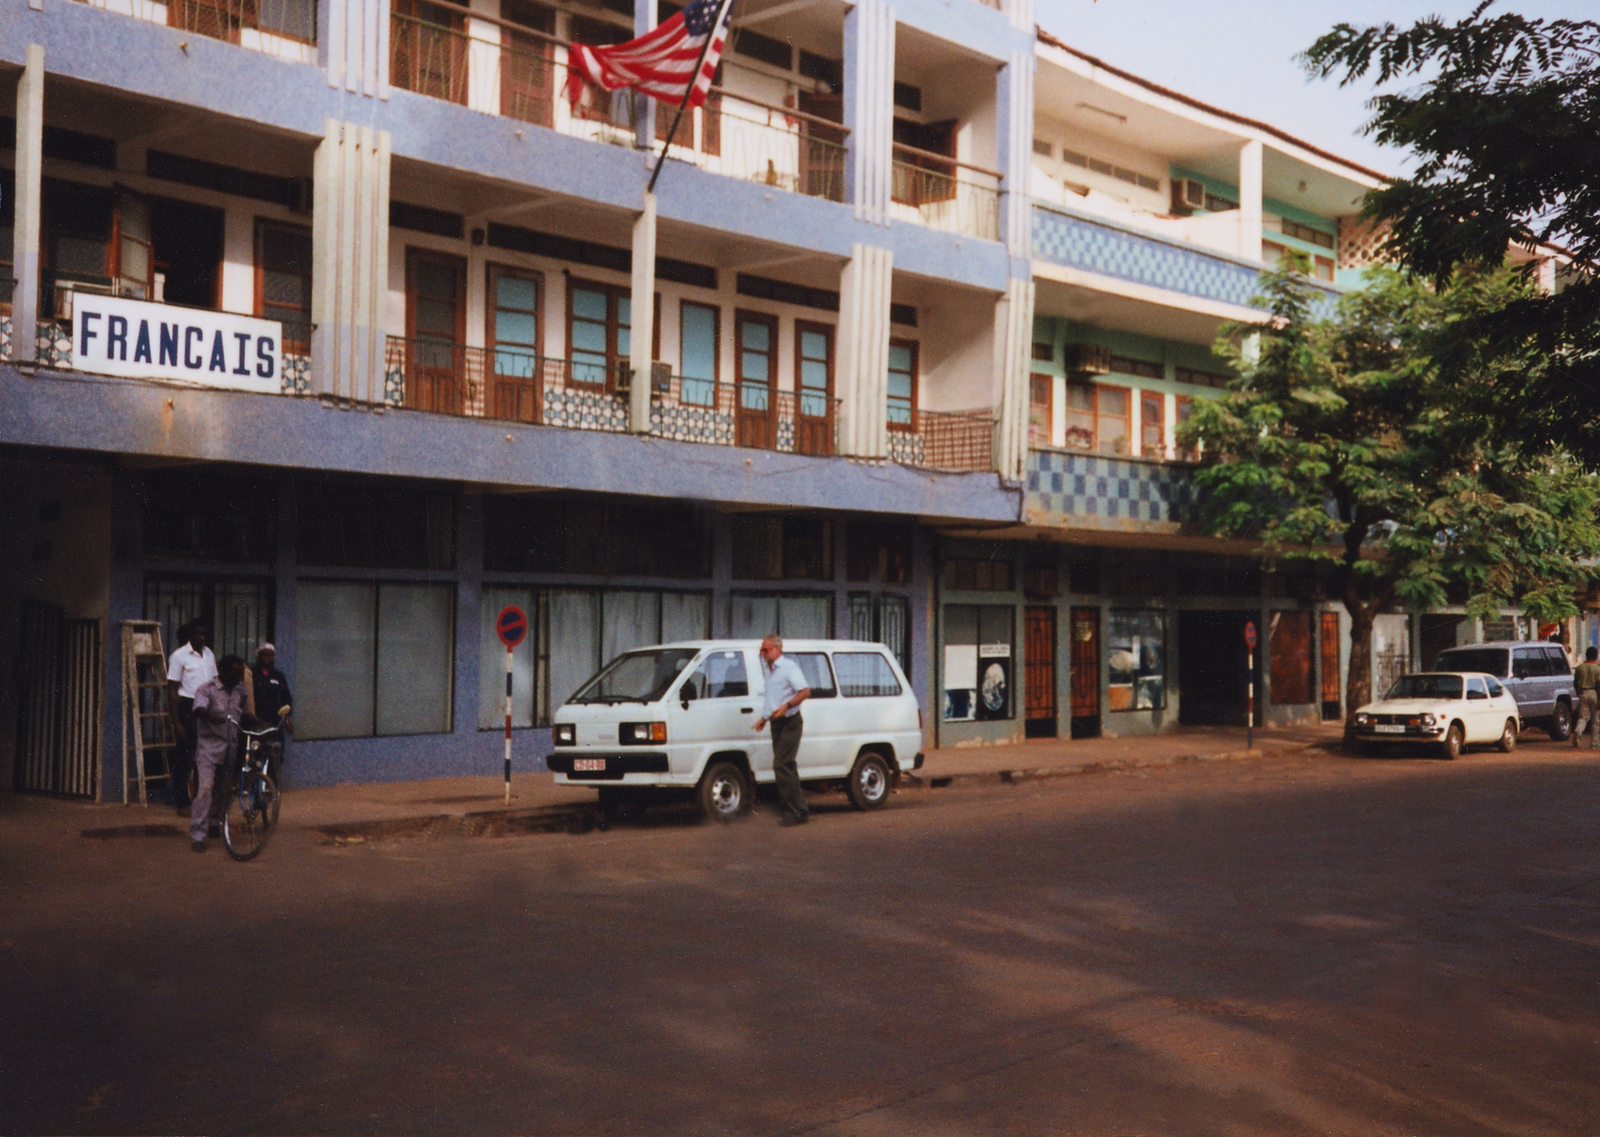 Bissau - Multi-Unit Residential Building - 1990